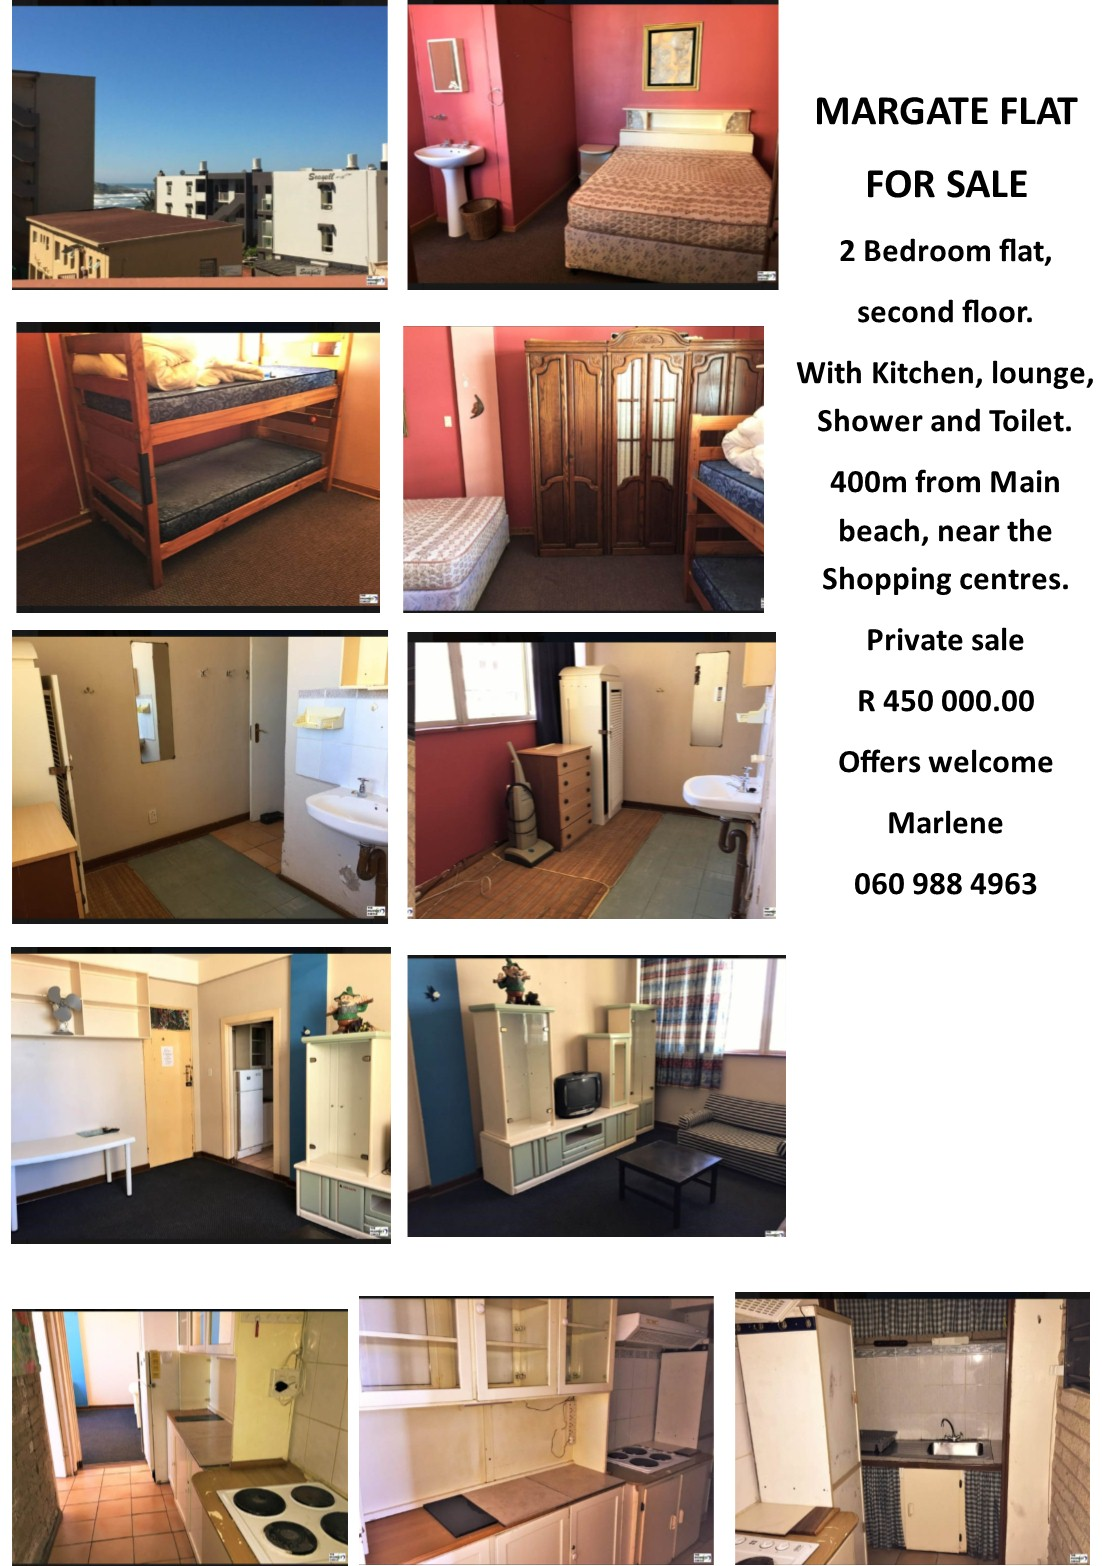 MARGATE FLAT FOR SALE